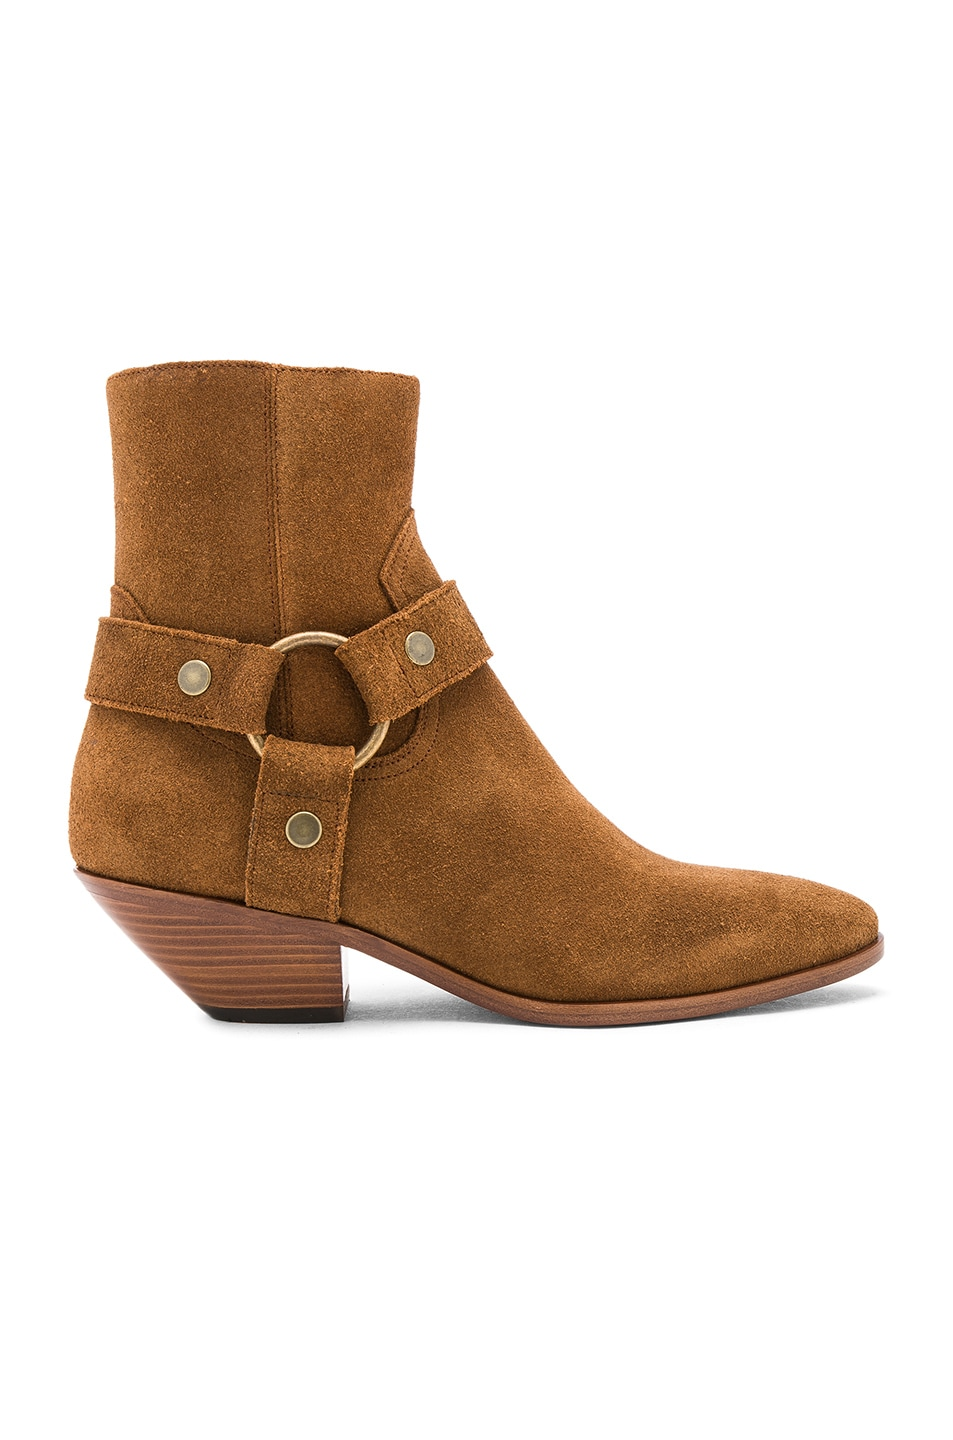 Image 1 of Saint Laurent Suede West Strap Ankle Boots in Hazelnut